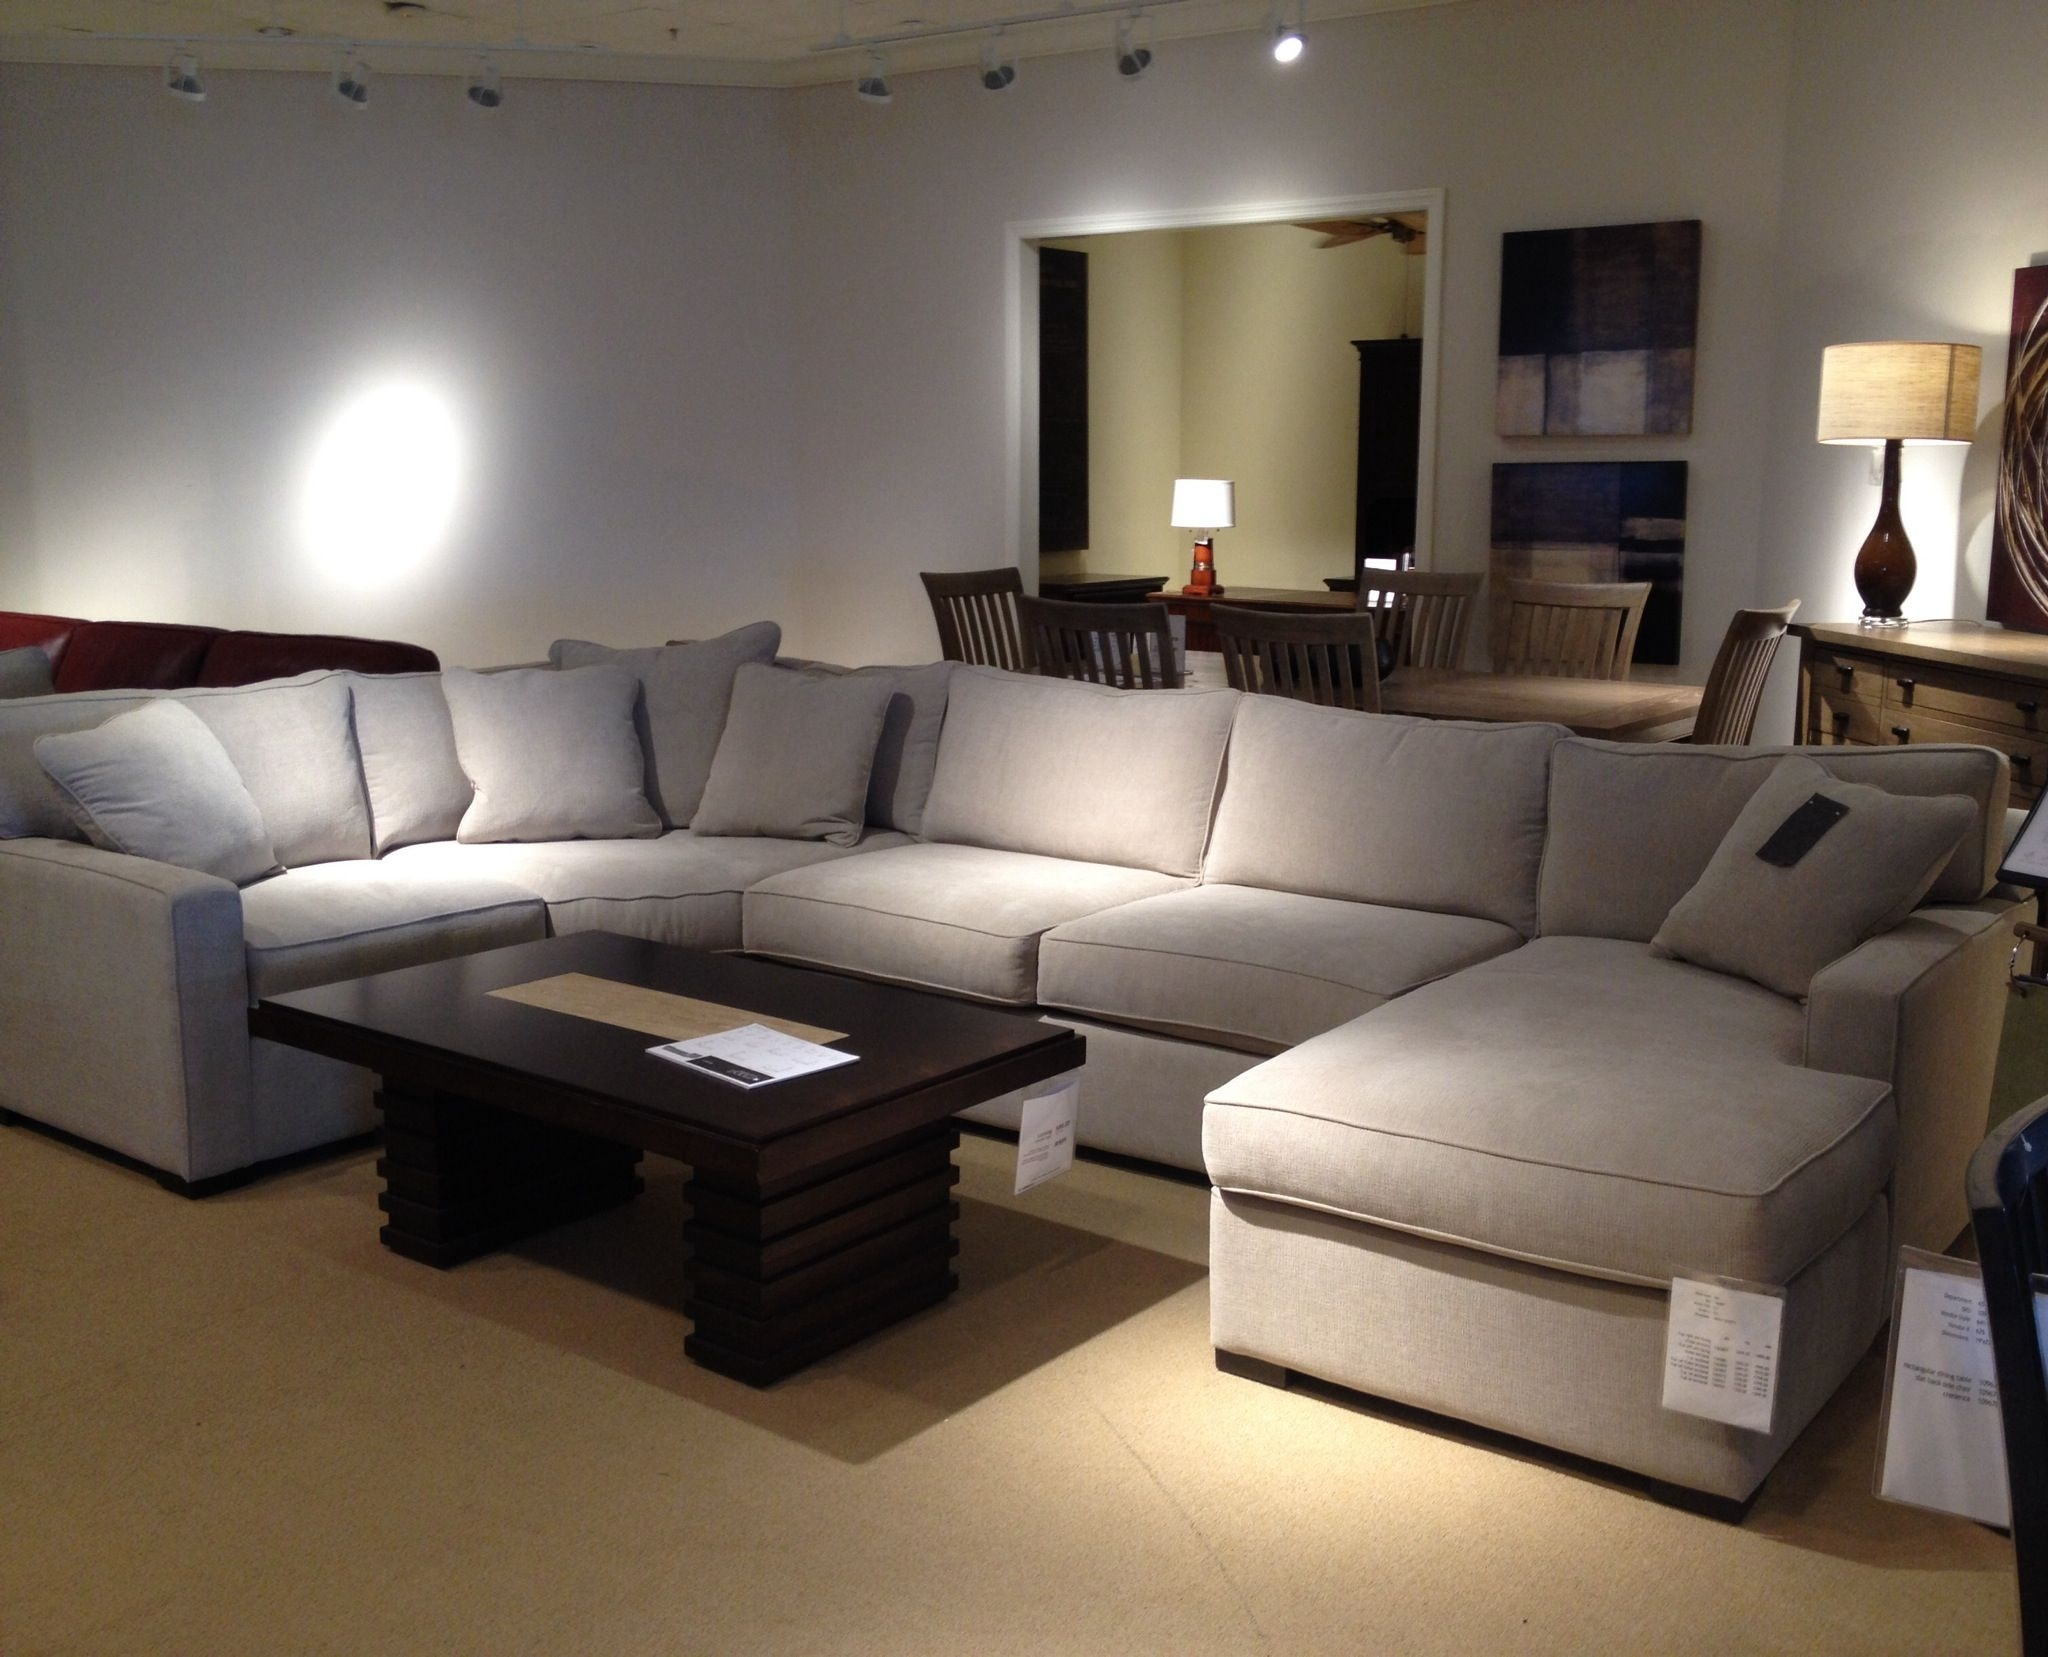 Radley 4 Piece Sectional Sofa From Macys (Image 23 of 25)